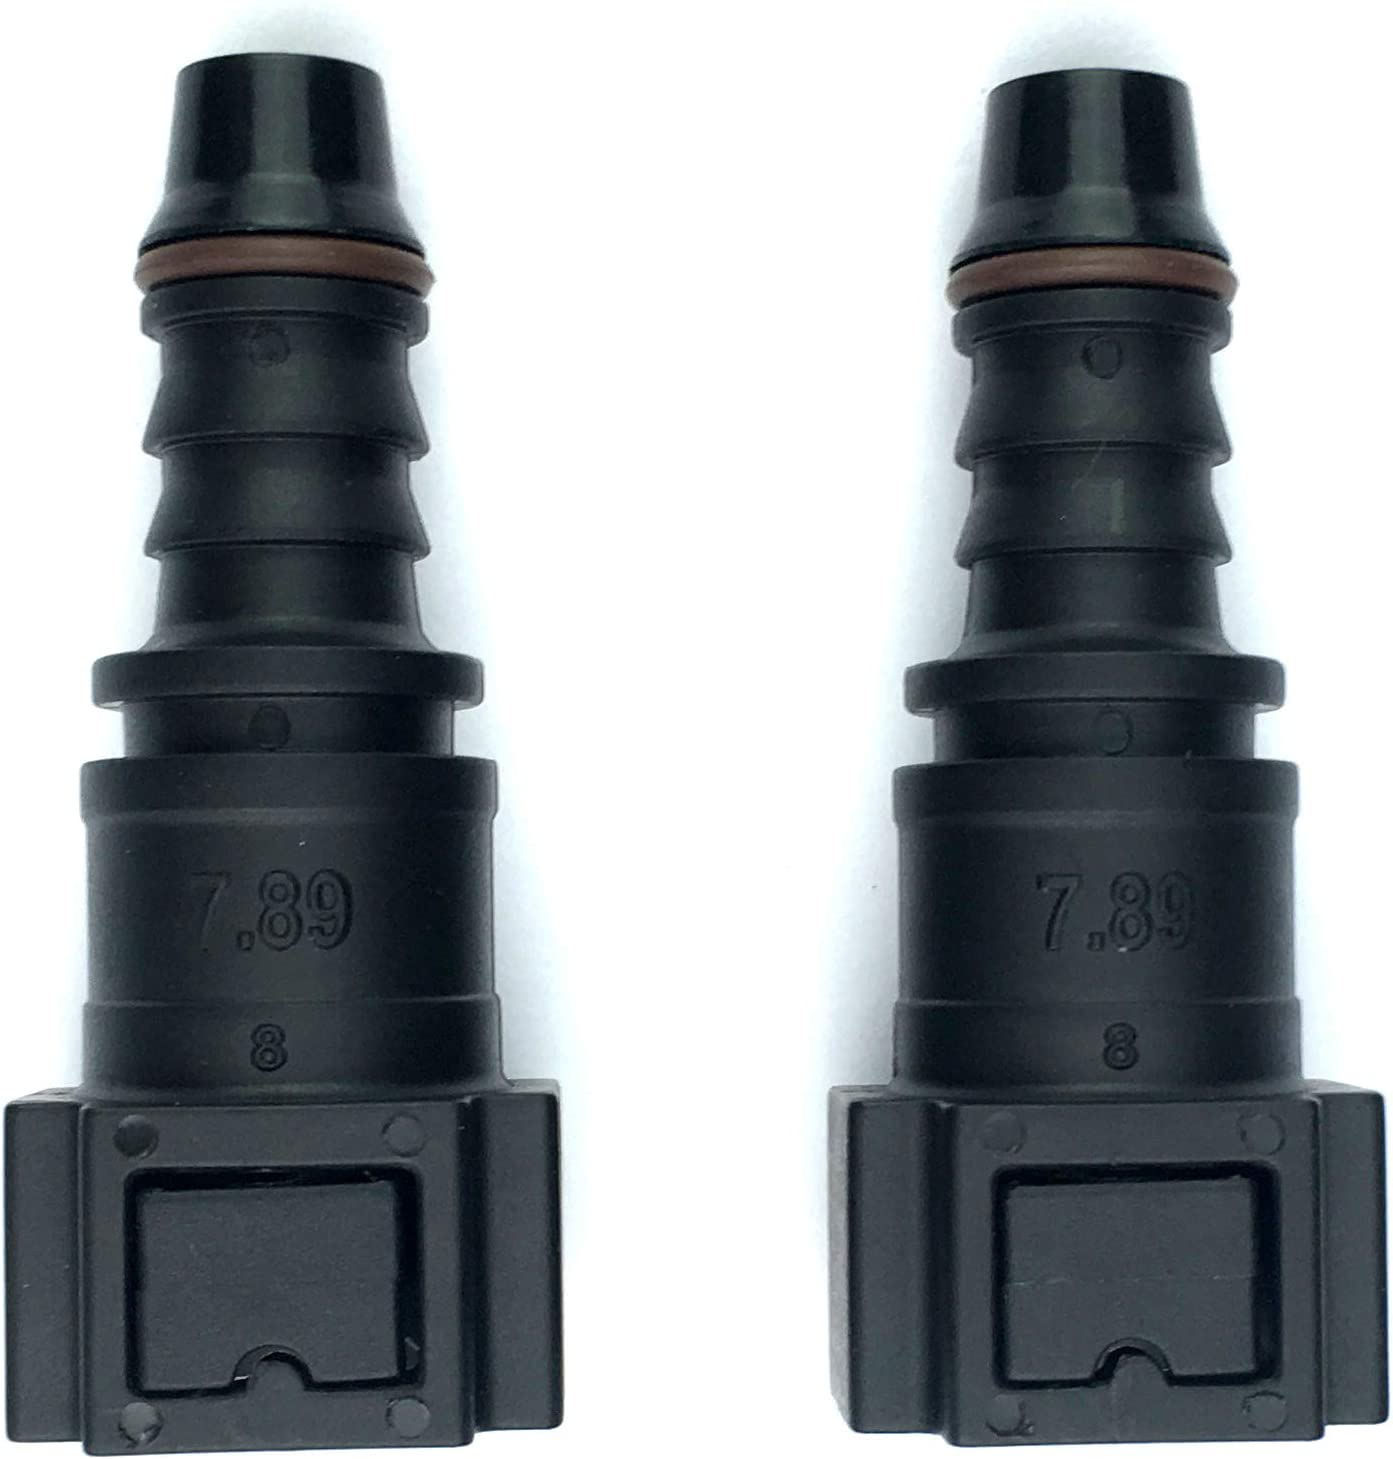 Pack of 2 Fuel Line Quick Connector 1//4 Bundy Female to Barb Straight for 1//4 Steel to 1//4 inch ID Nylon Tubing